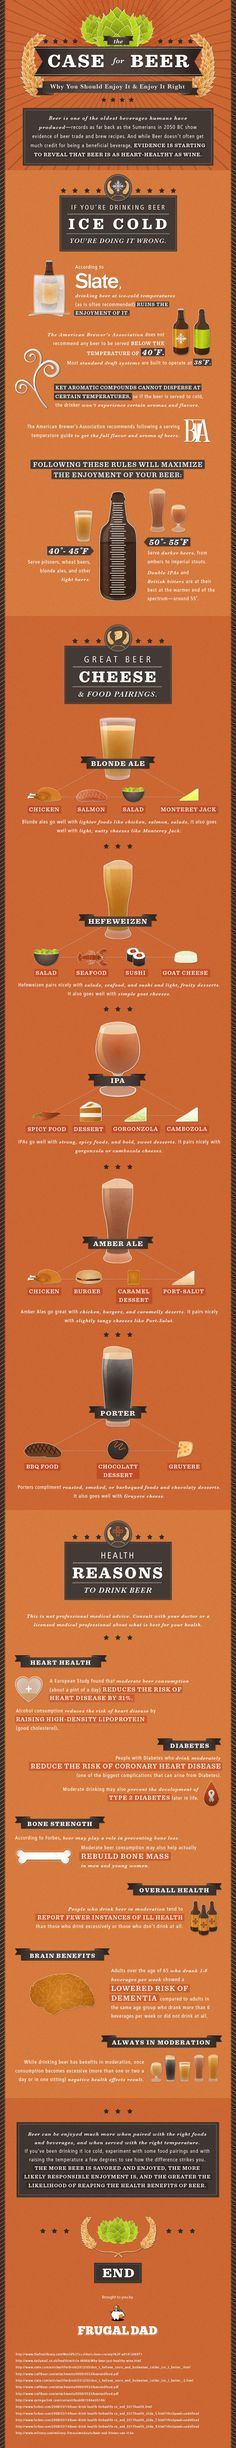 The health benefits of beer.